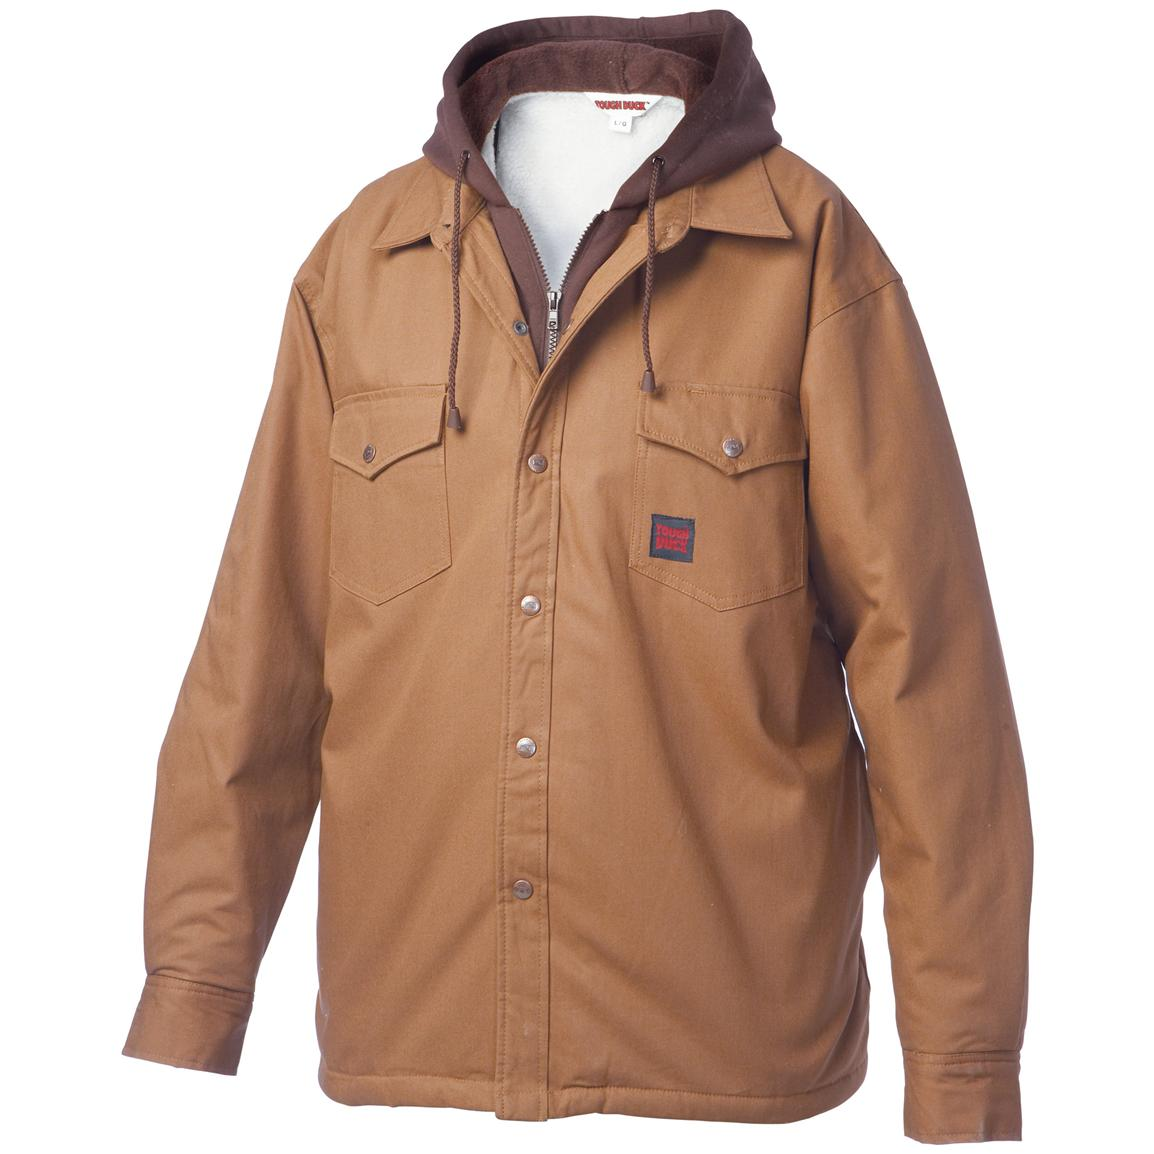 Tough Duck Shirt with Hood, Brown